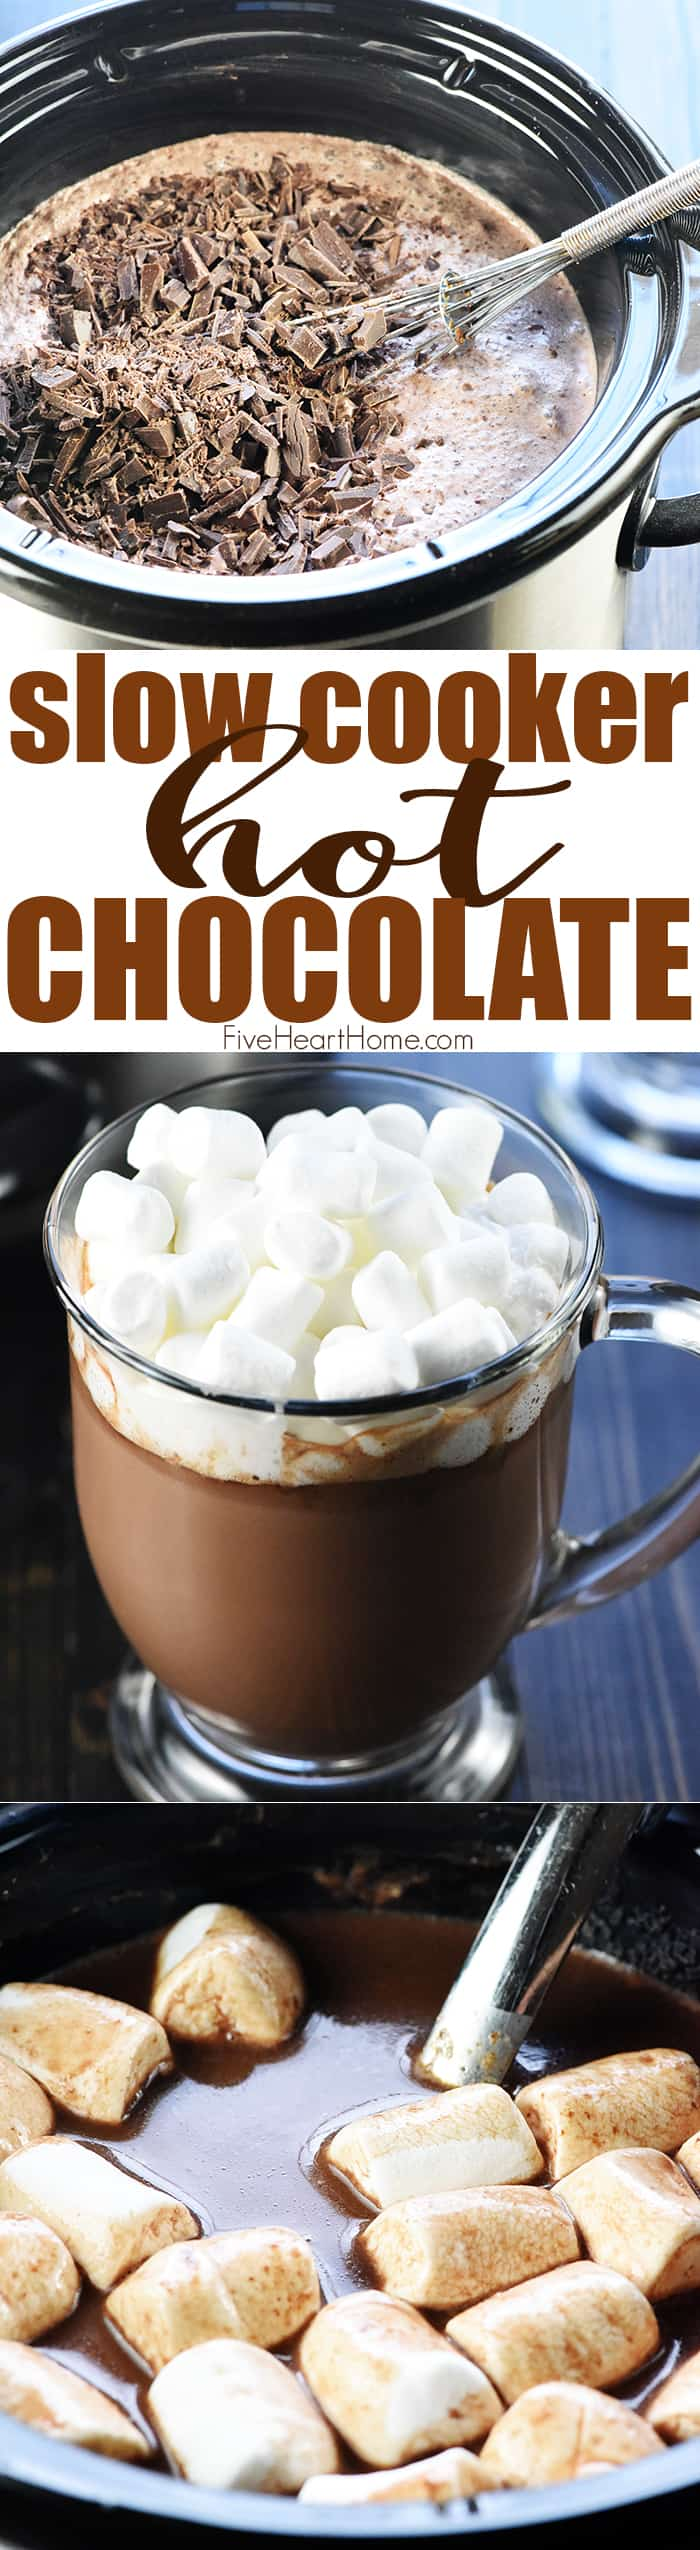 Slow Cooker Hot Chocolate ~ using a crock pot is the easiest way to make a big batch of rich, decadent hot cocoa for a crowd, and four flavor variations make it extra yummy: regular, salted caramel, peppermint, and Mexican hot chocolate! | FiveHeartHome.com via @fivehearthome